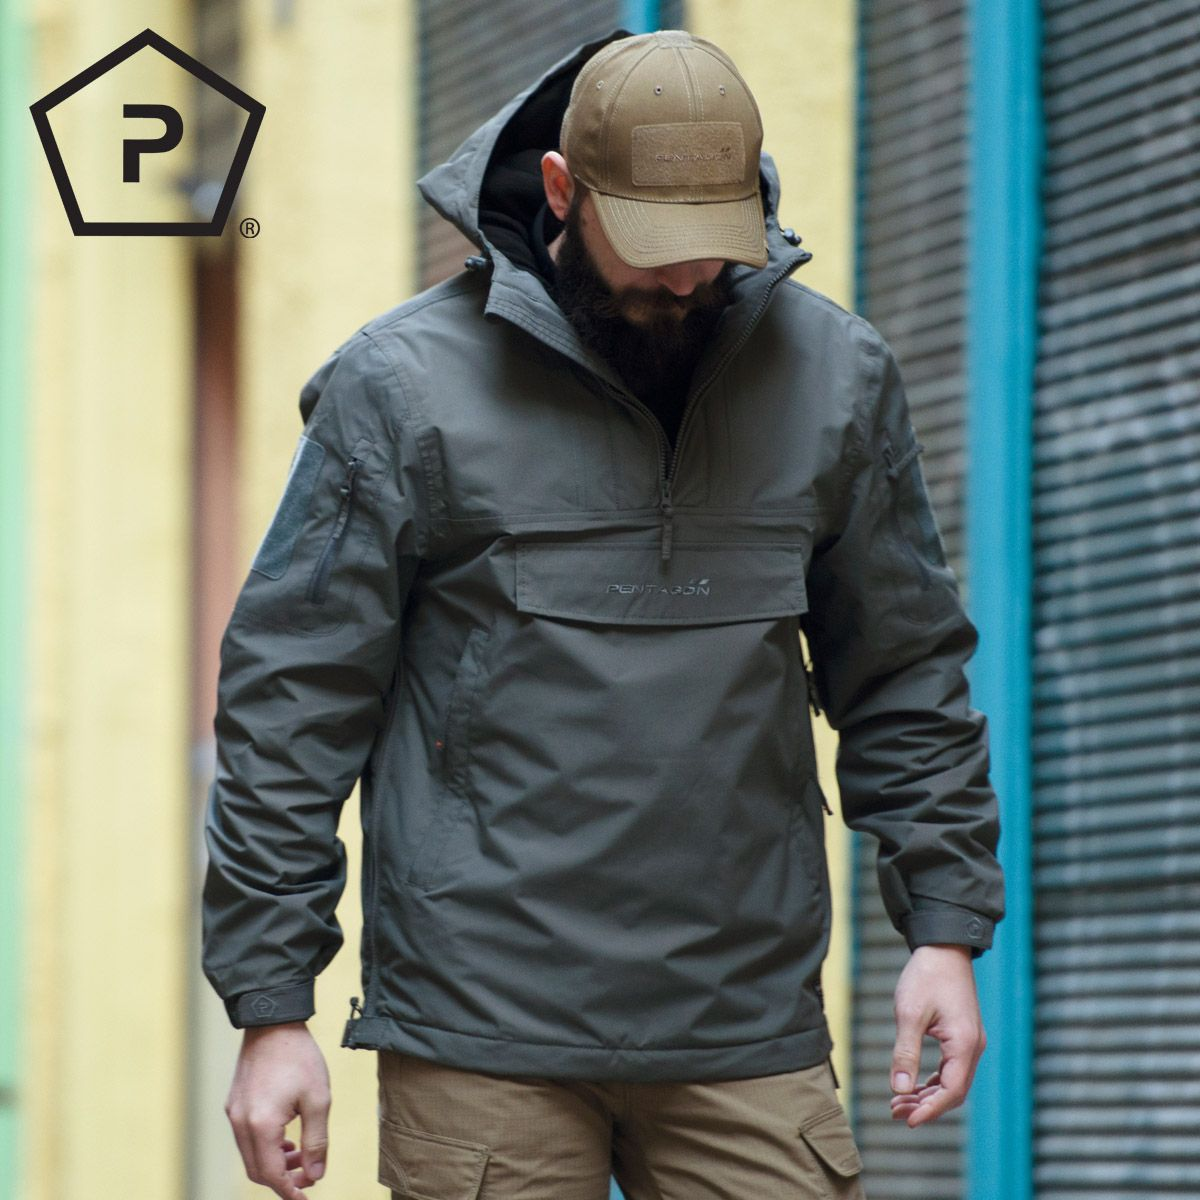 e90e8e9c02b Breathable and water-resistant Pentagon UTA Anorak comes with large  fleece-lined hood